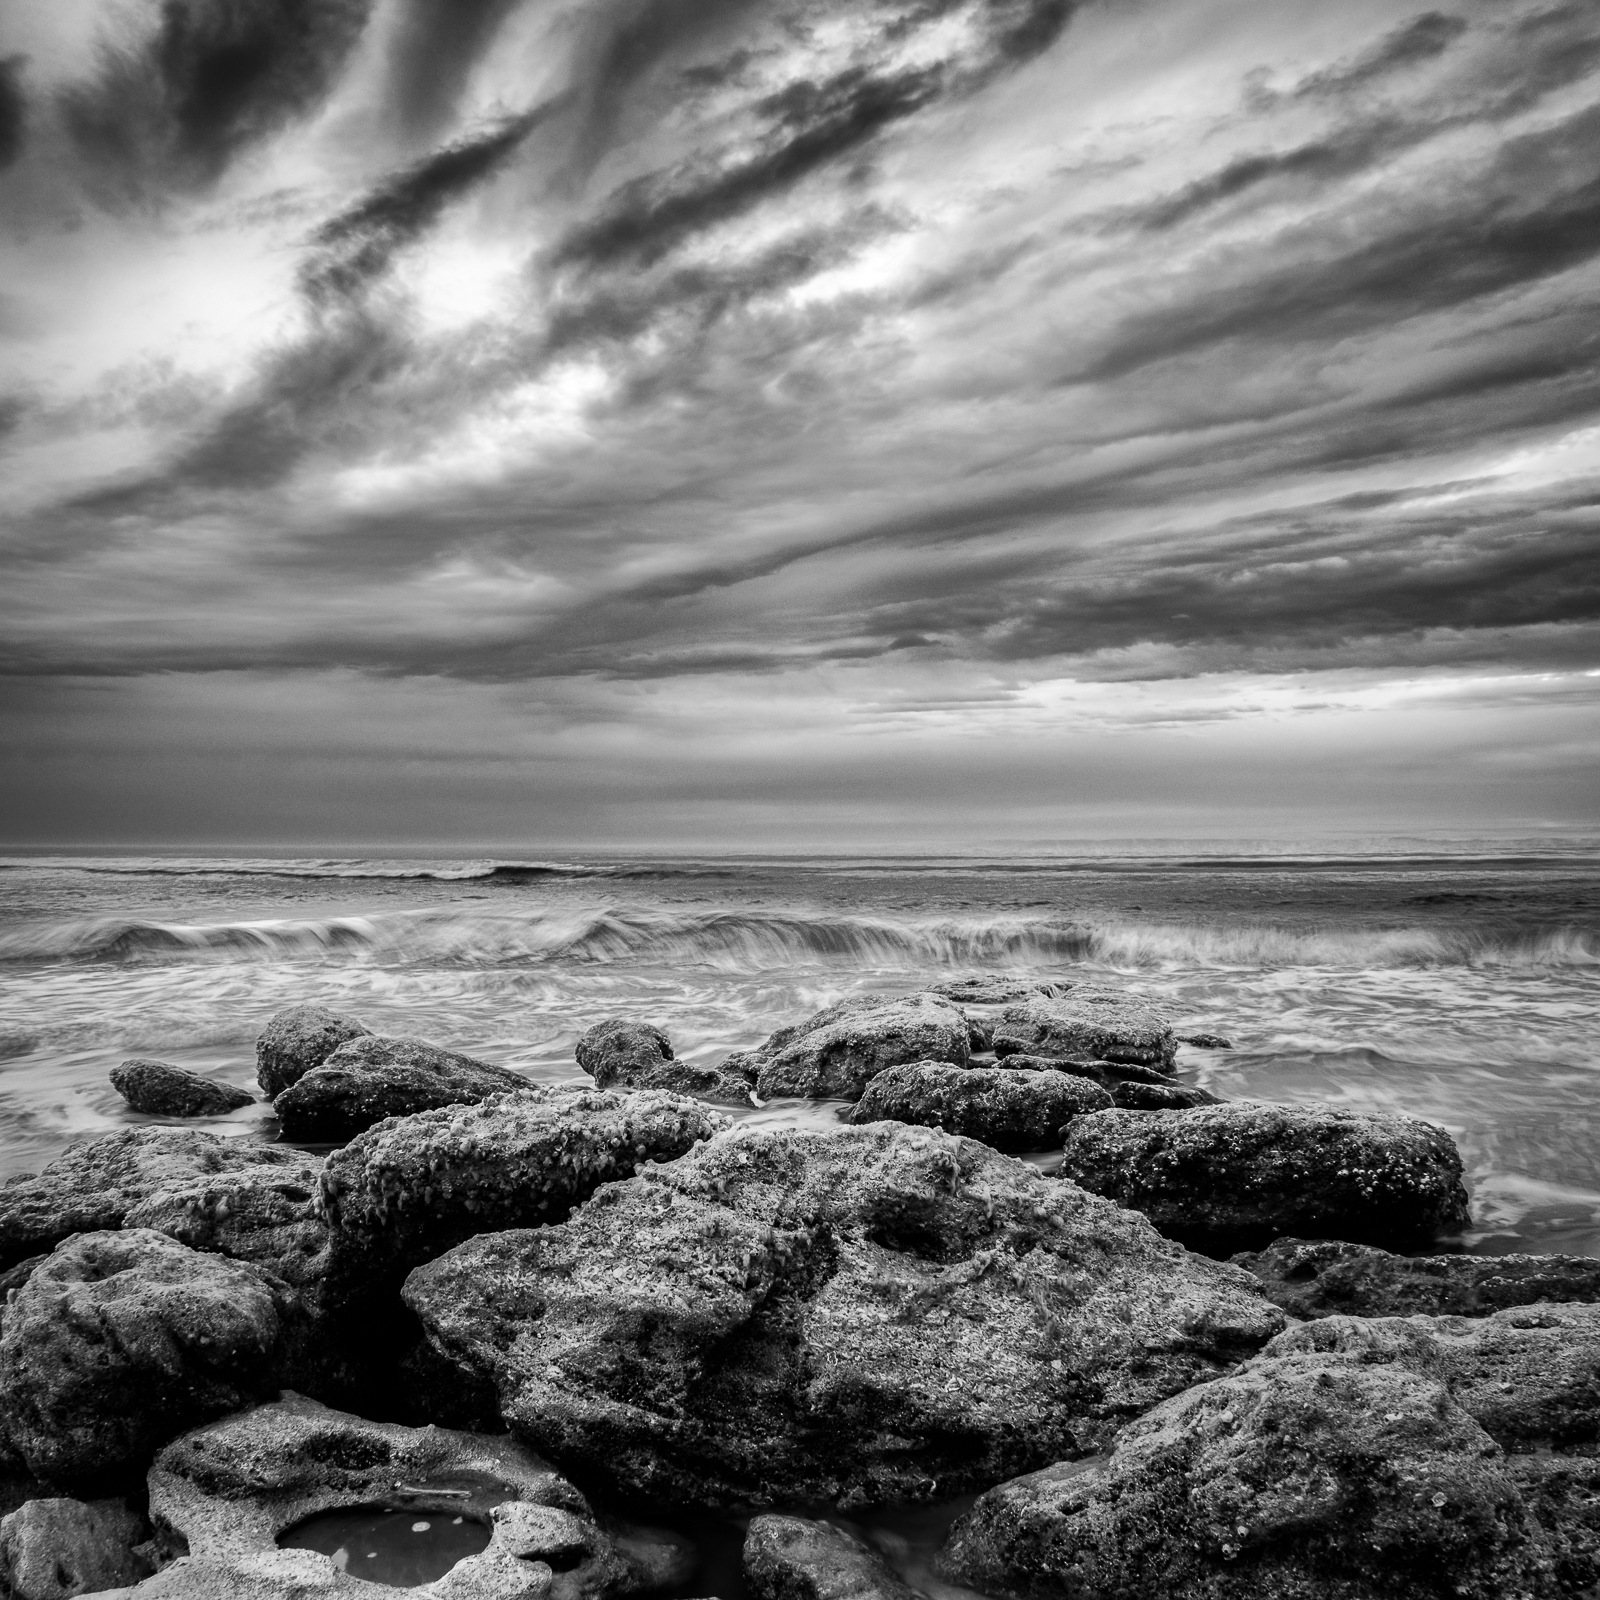 Clouds, waves, and rocks: Marineland Beach